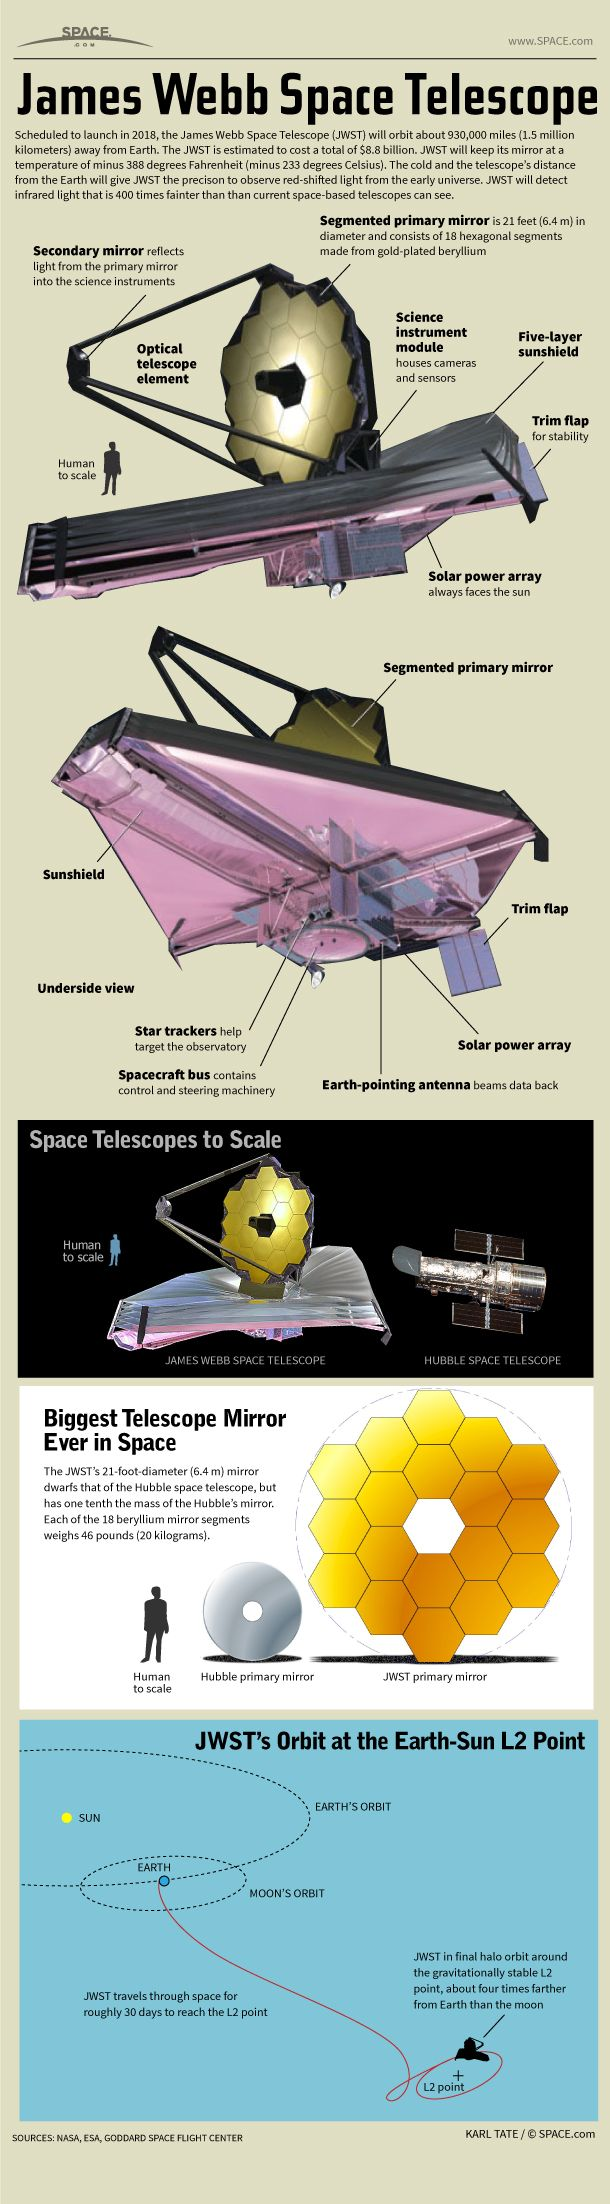 See how NASA's James Webb Space Telescope, a huge space observatory, will probe the universe from its perch in deep space.